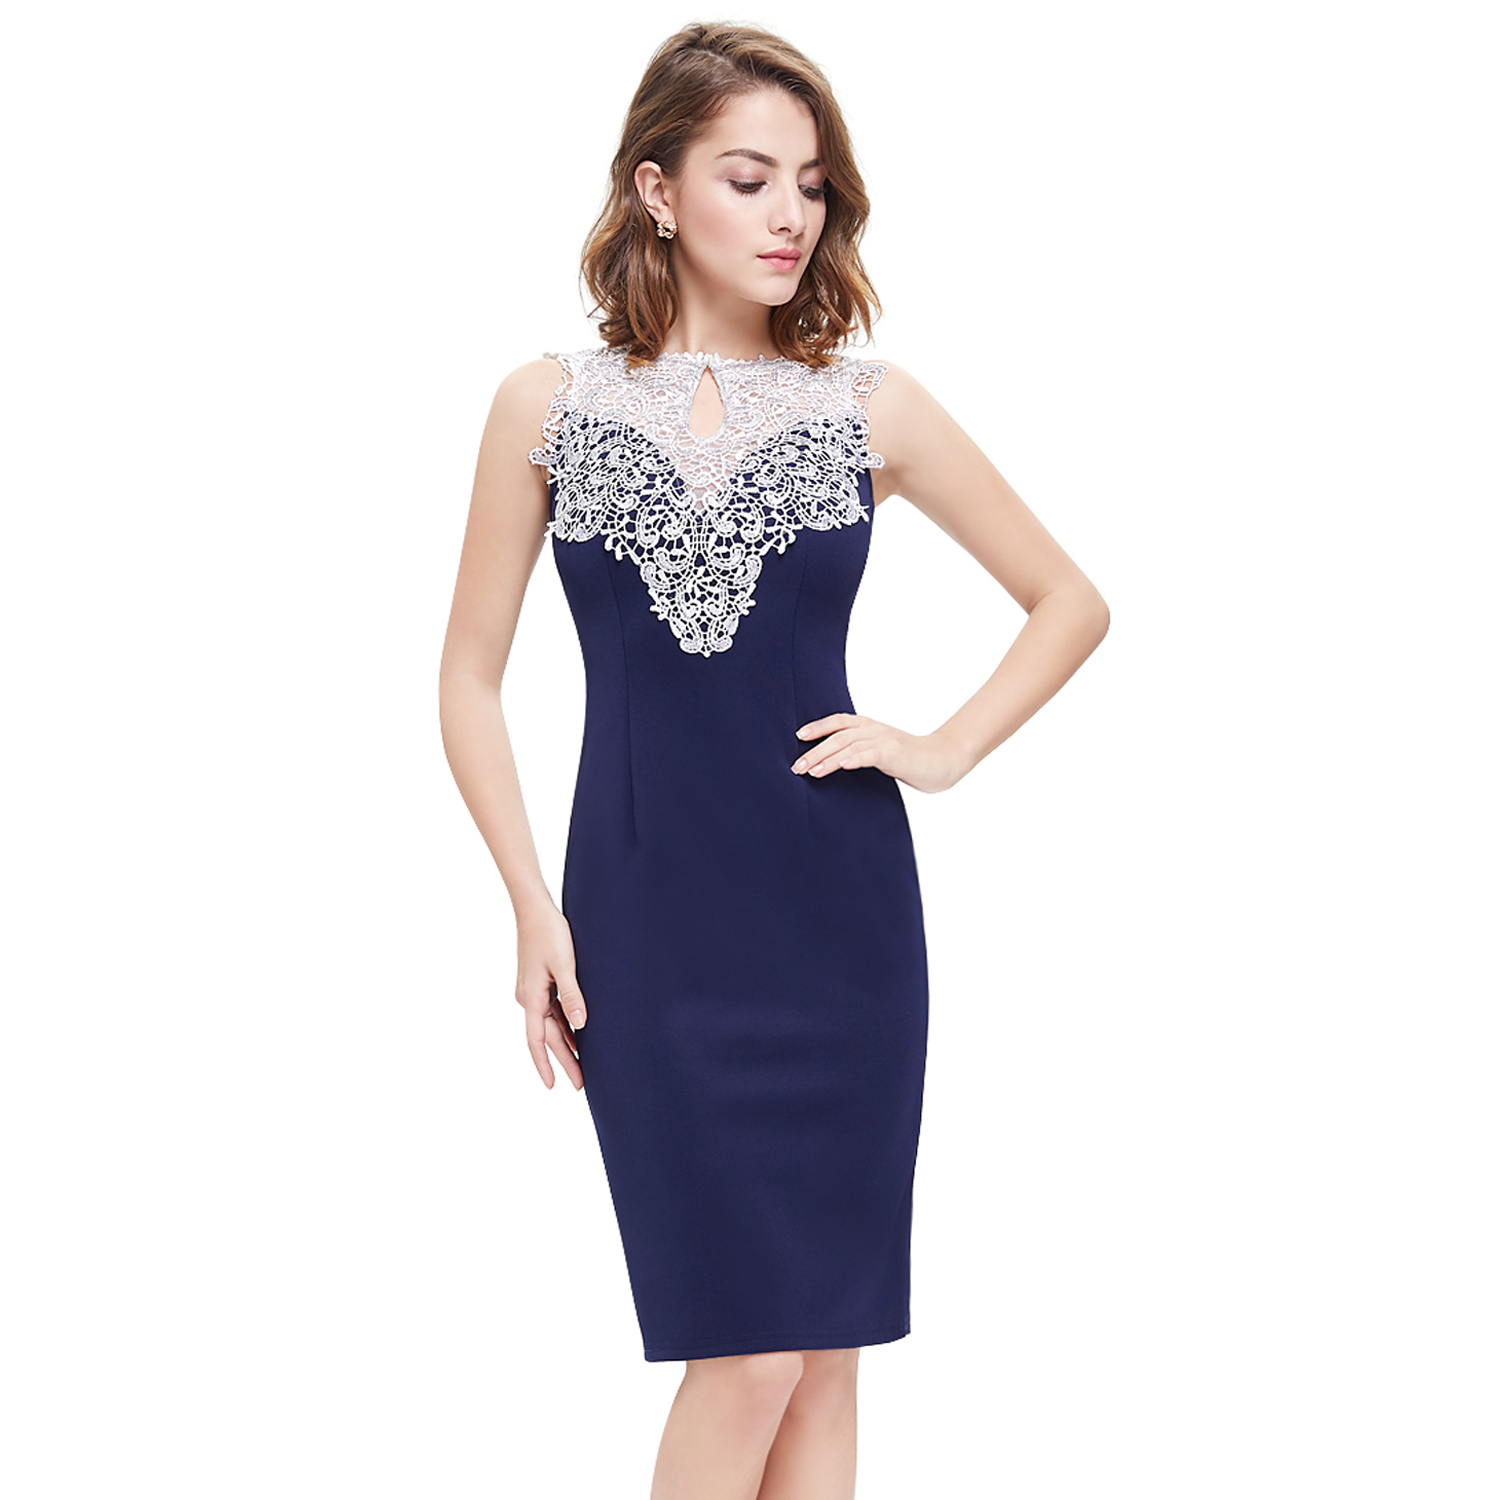 Women\'s Short Lace Cocktail Party DressesClub Casual Prom Bodycon ...